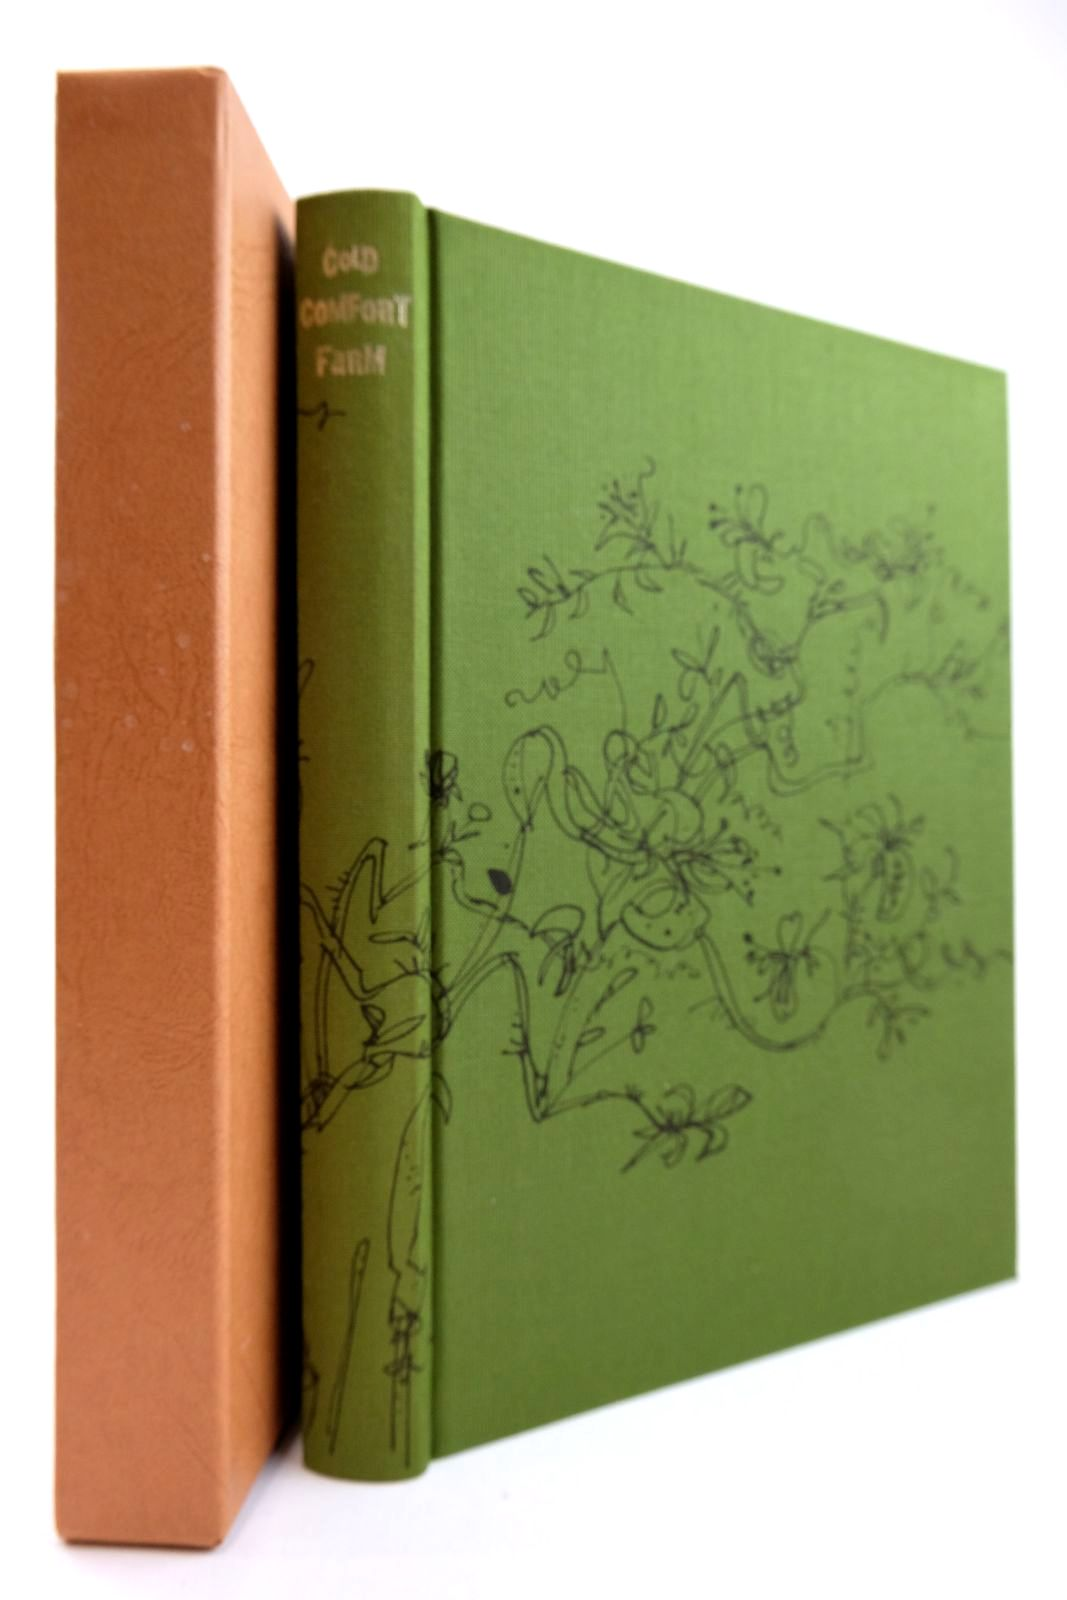 Photo of COLD COMFORT FARM written by Gibbons, Stella illustrated by Blake, Quentin published by Folio Society (STOCK CODE: 2134276)  for sale by Stella & Rose's Books